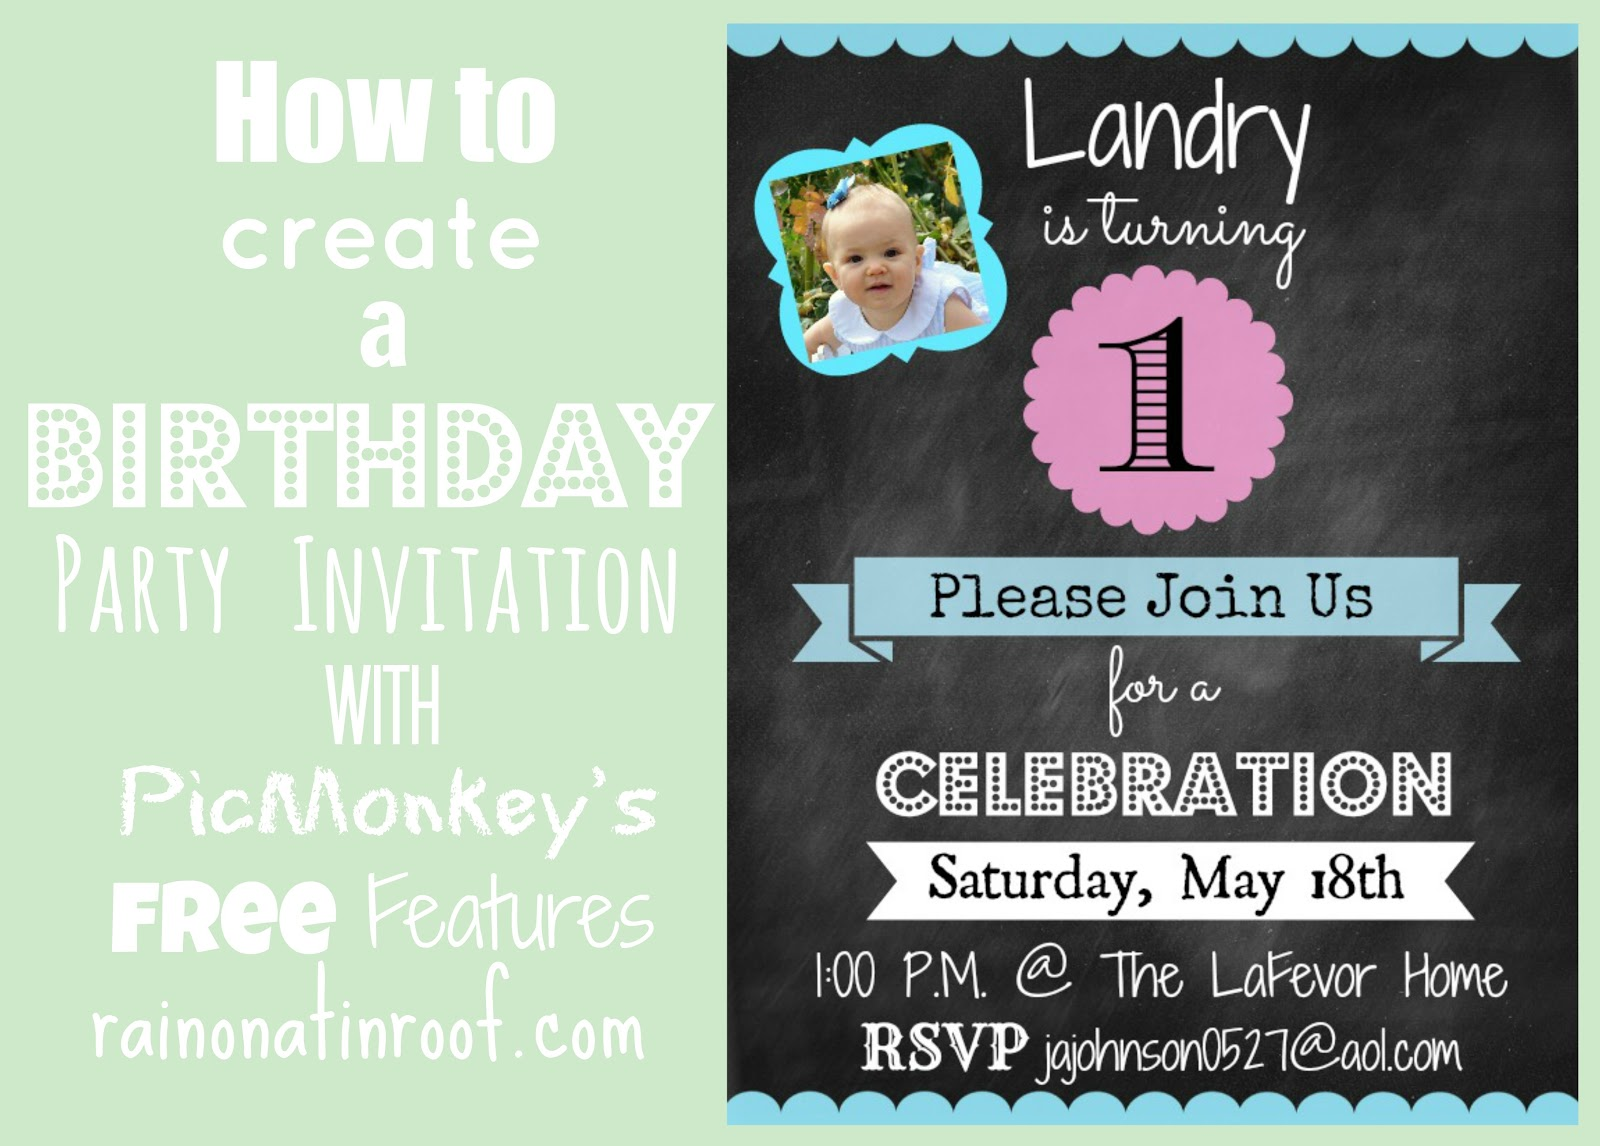 How to Create an Invitation in PicMonkey – Make My Own Party Invitations